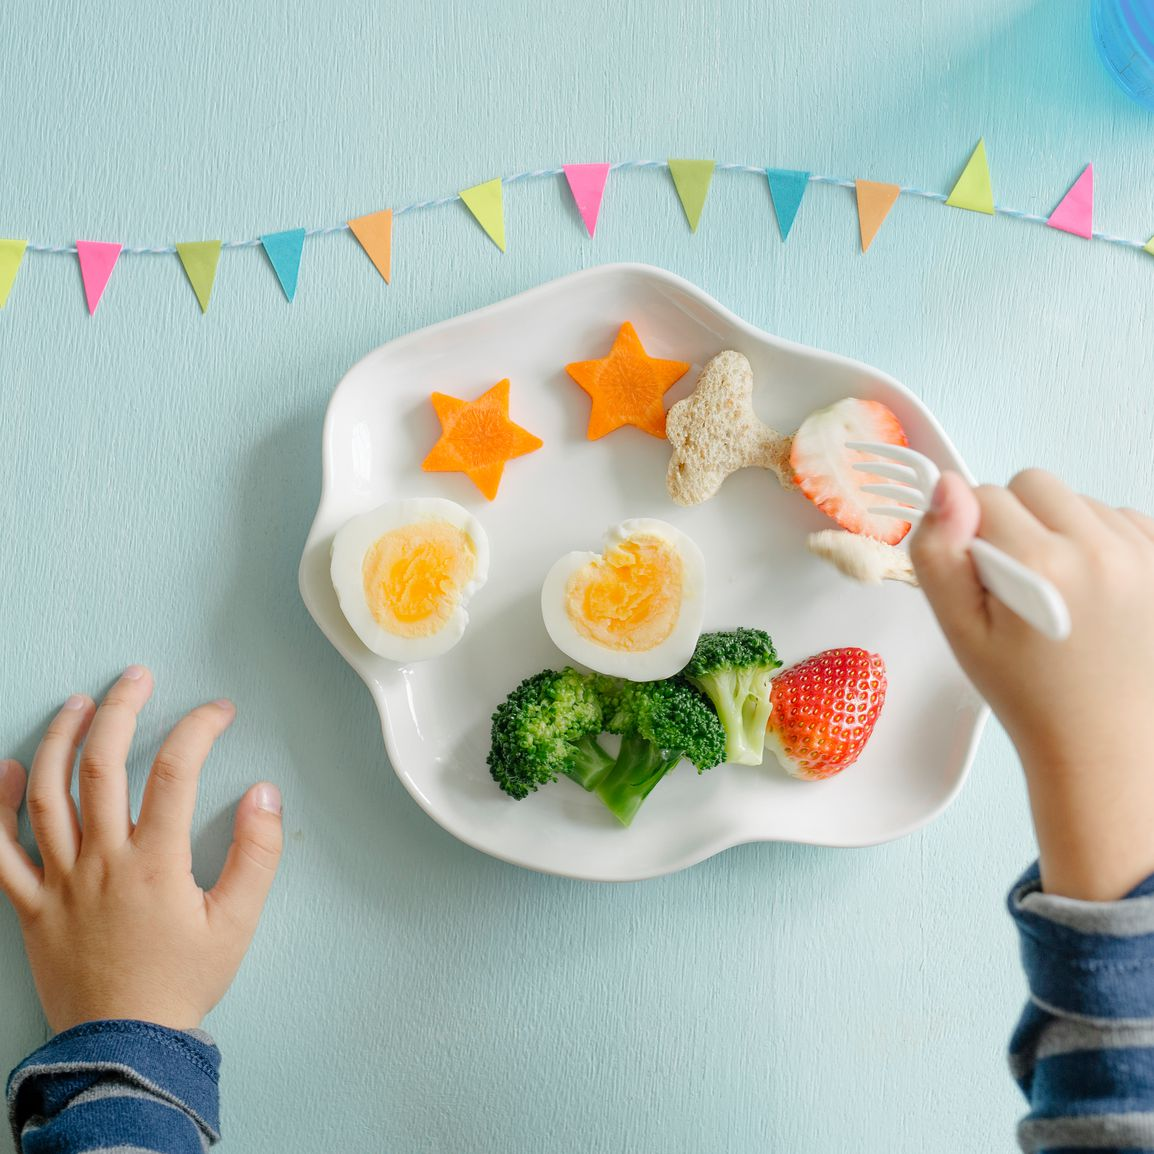 Is It OK to Let My Kids Go Vegetarian or Vegan?